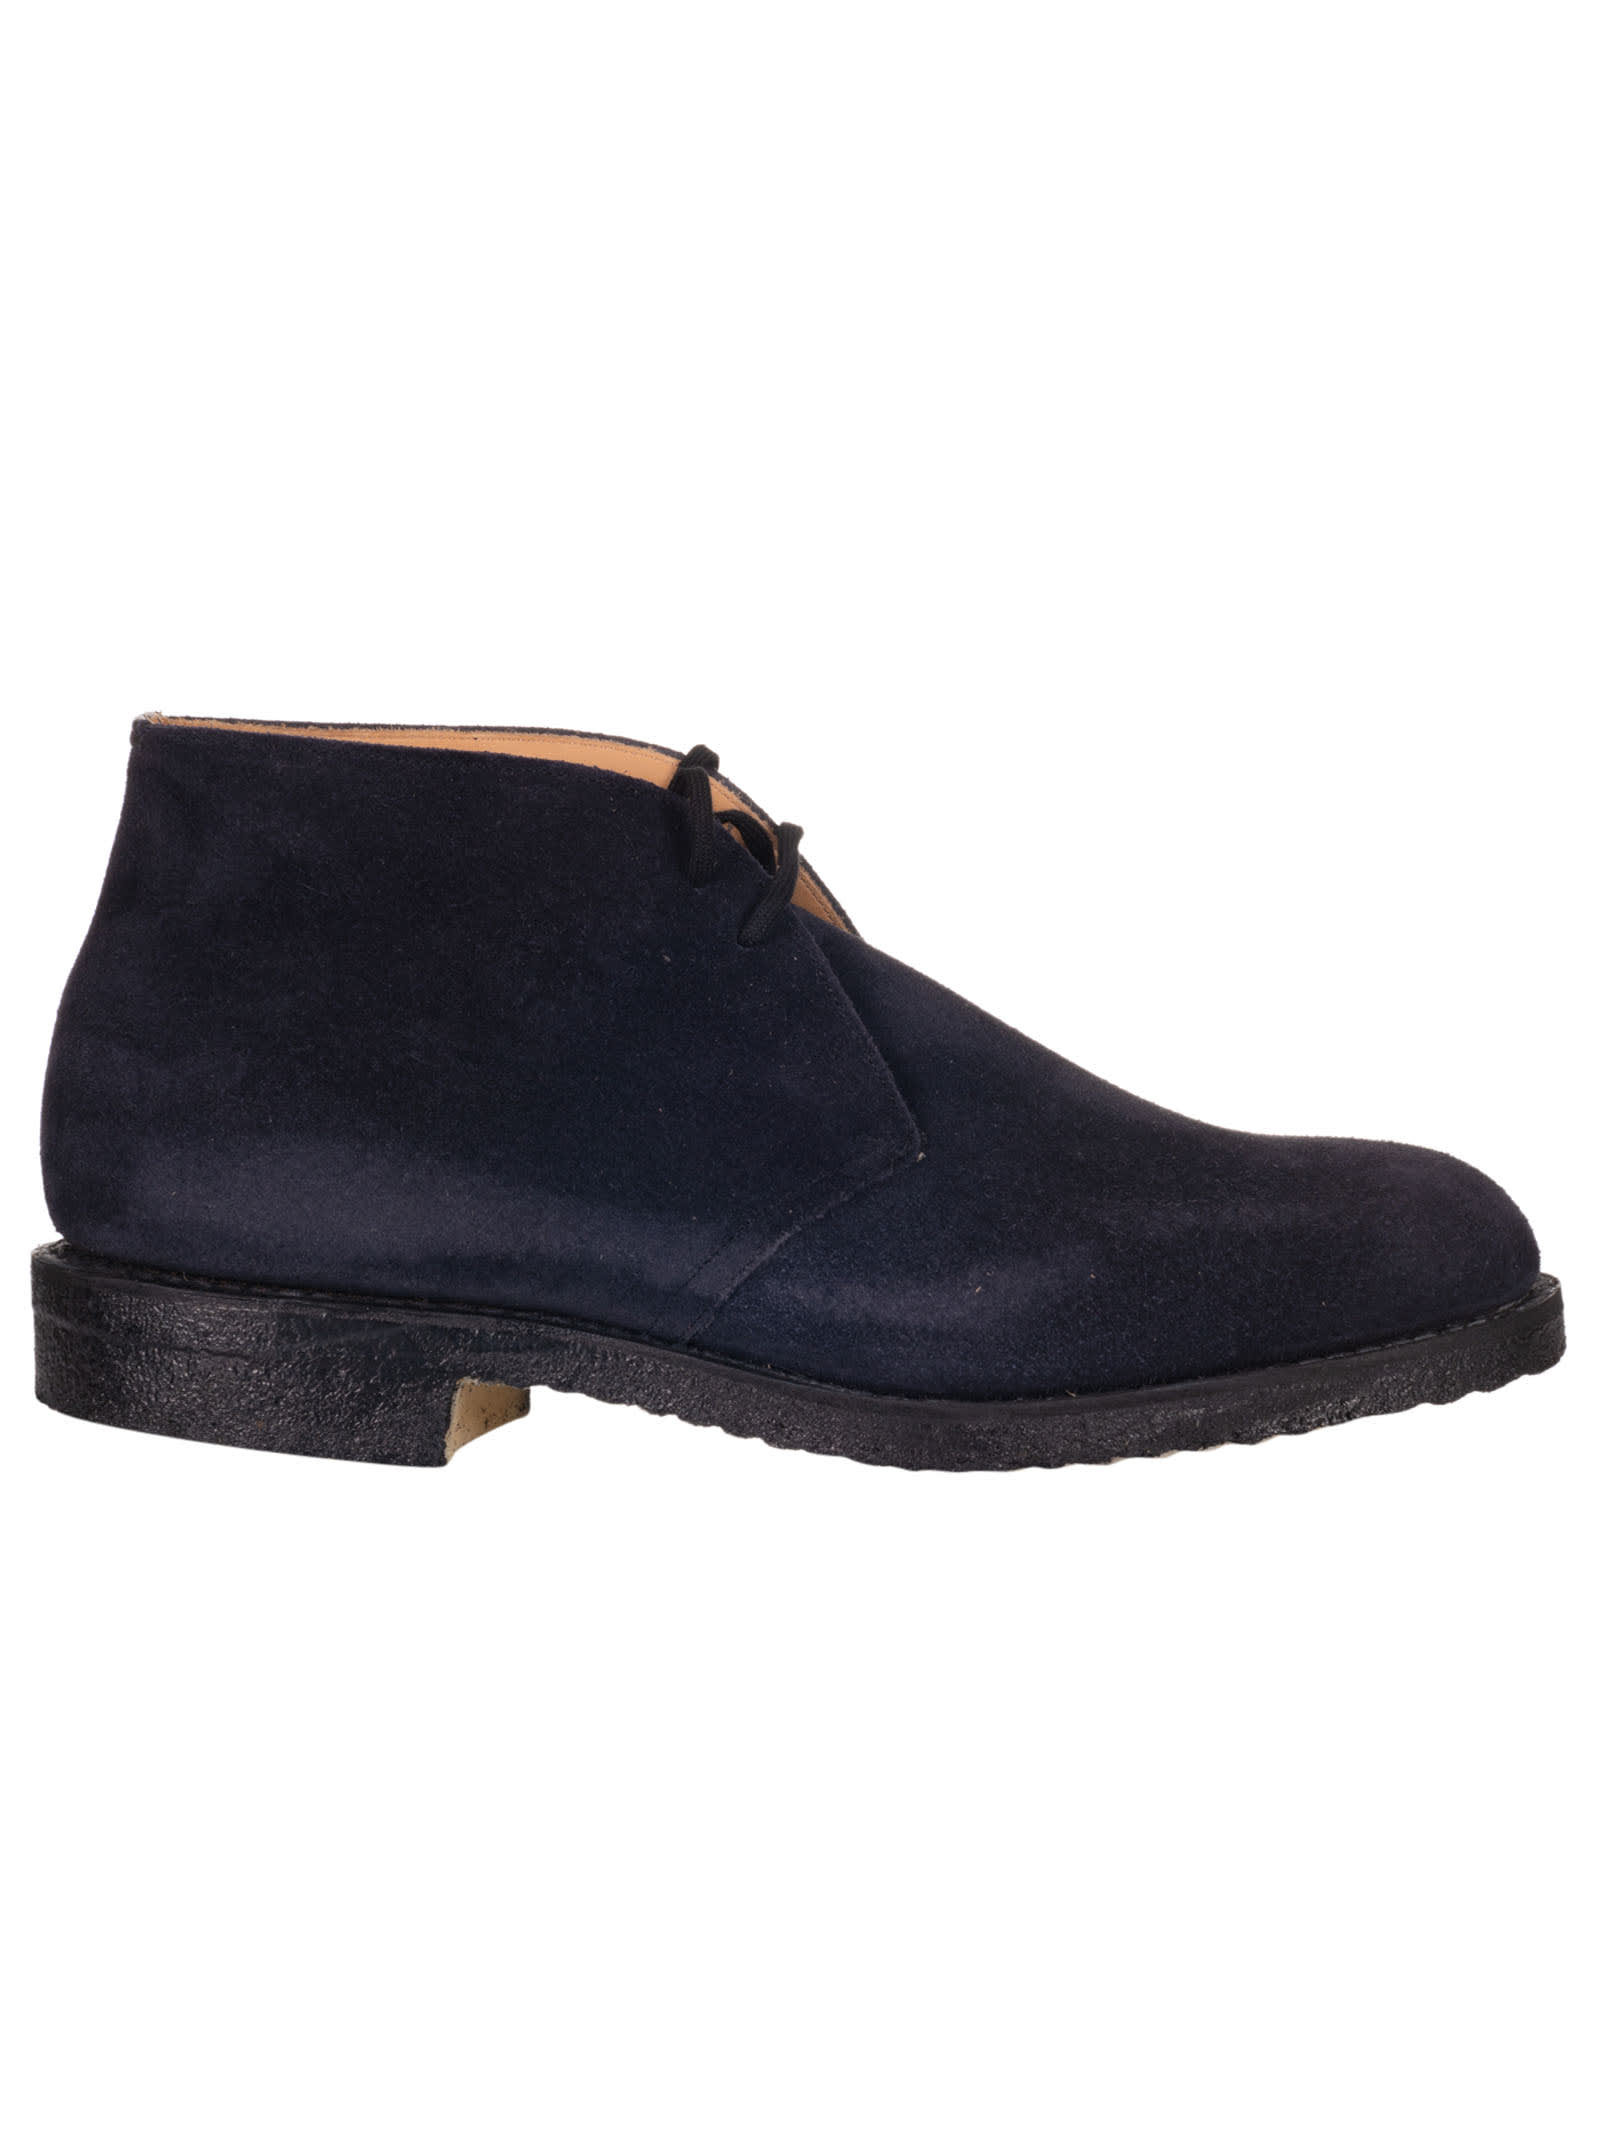 Churchs Ryder Lace-up Boots